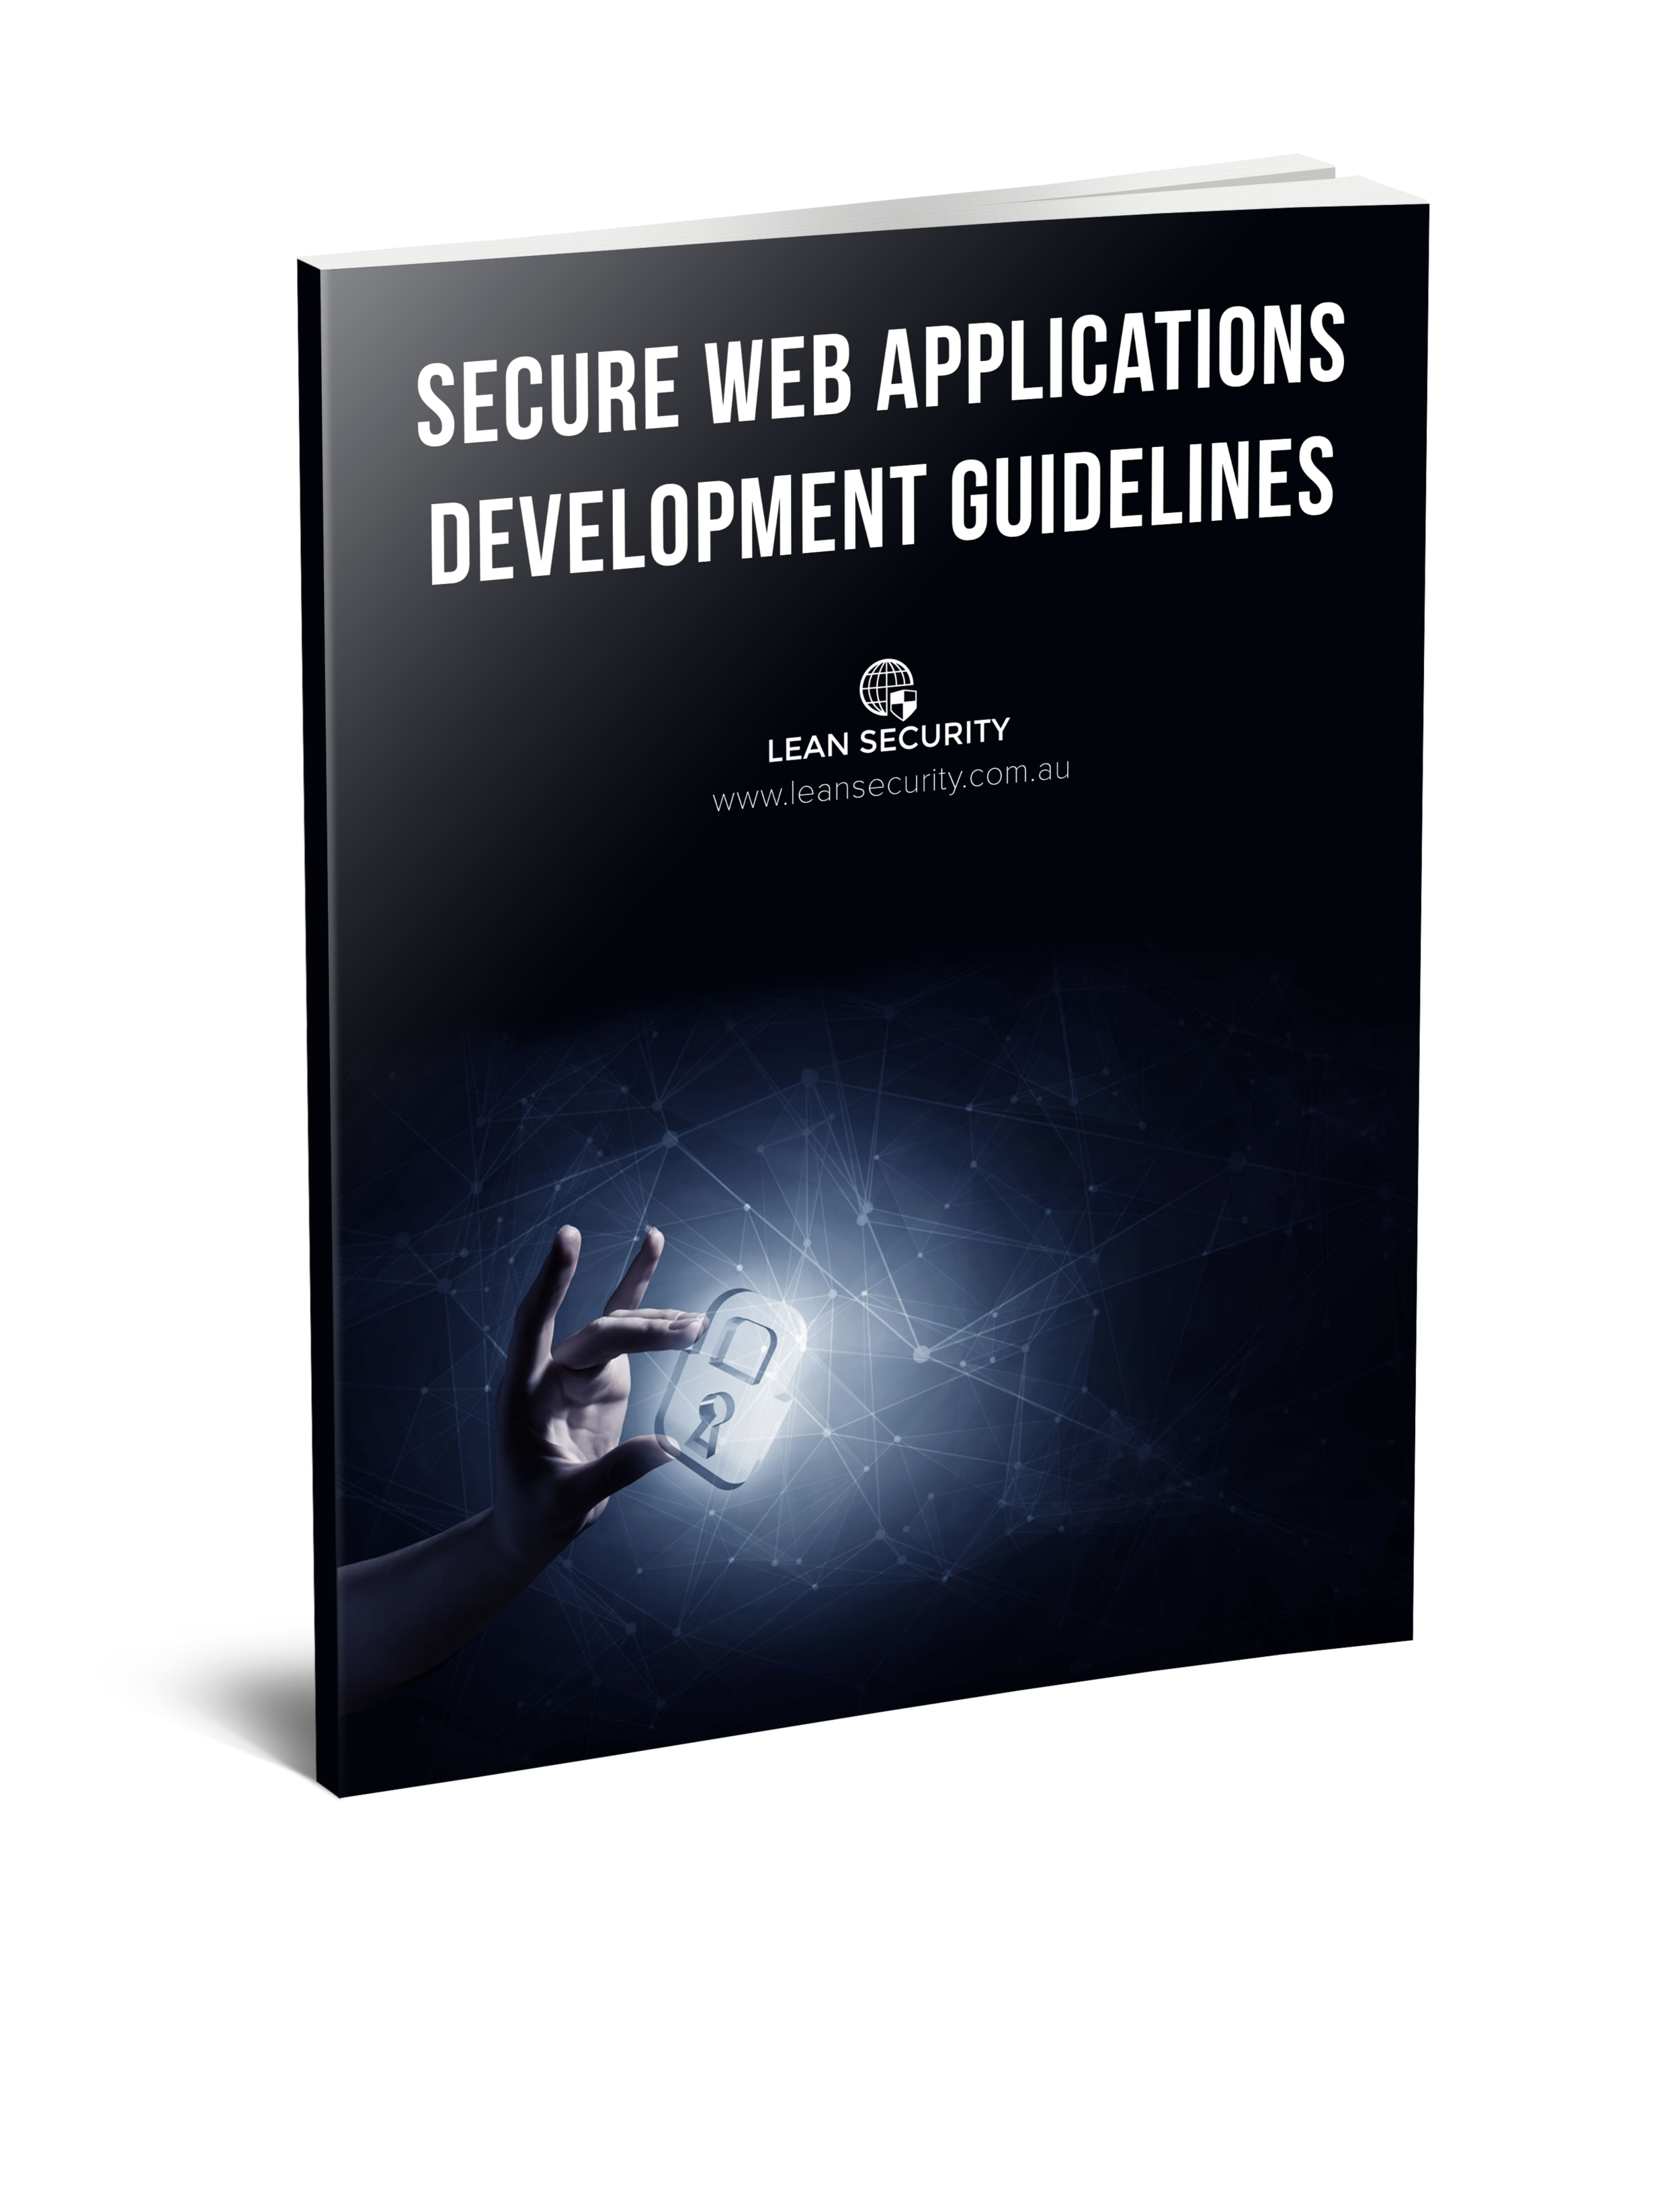 Secure Web Applications Development Guidelines